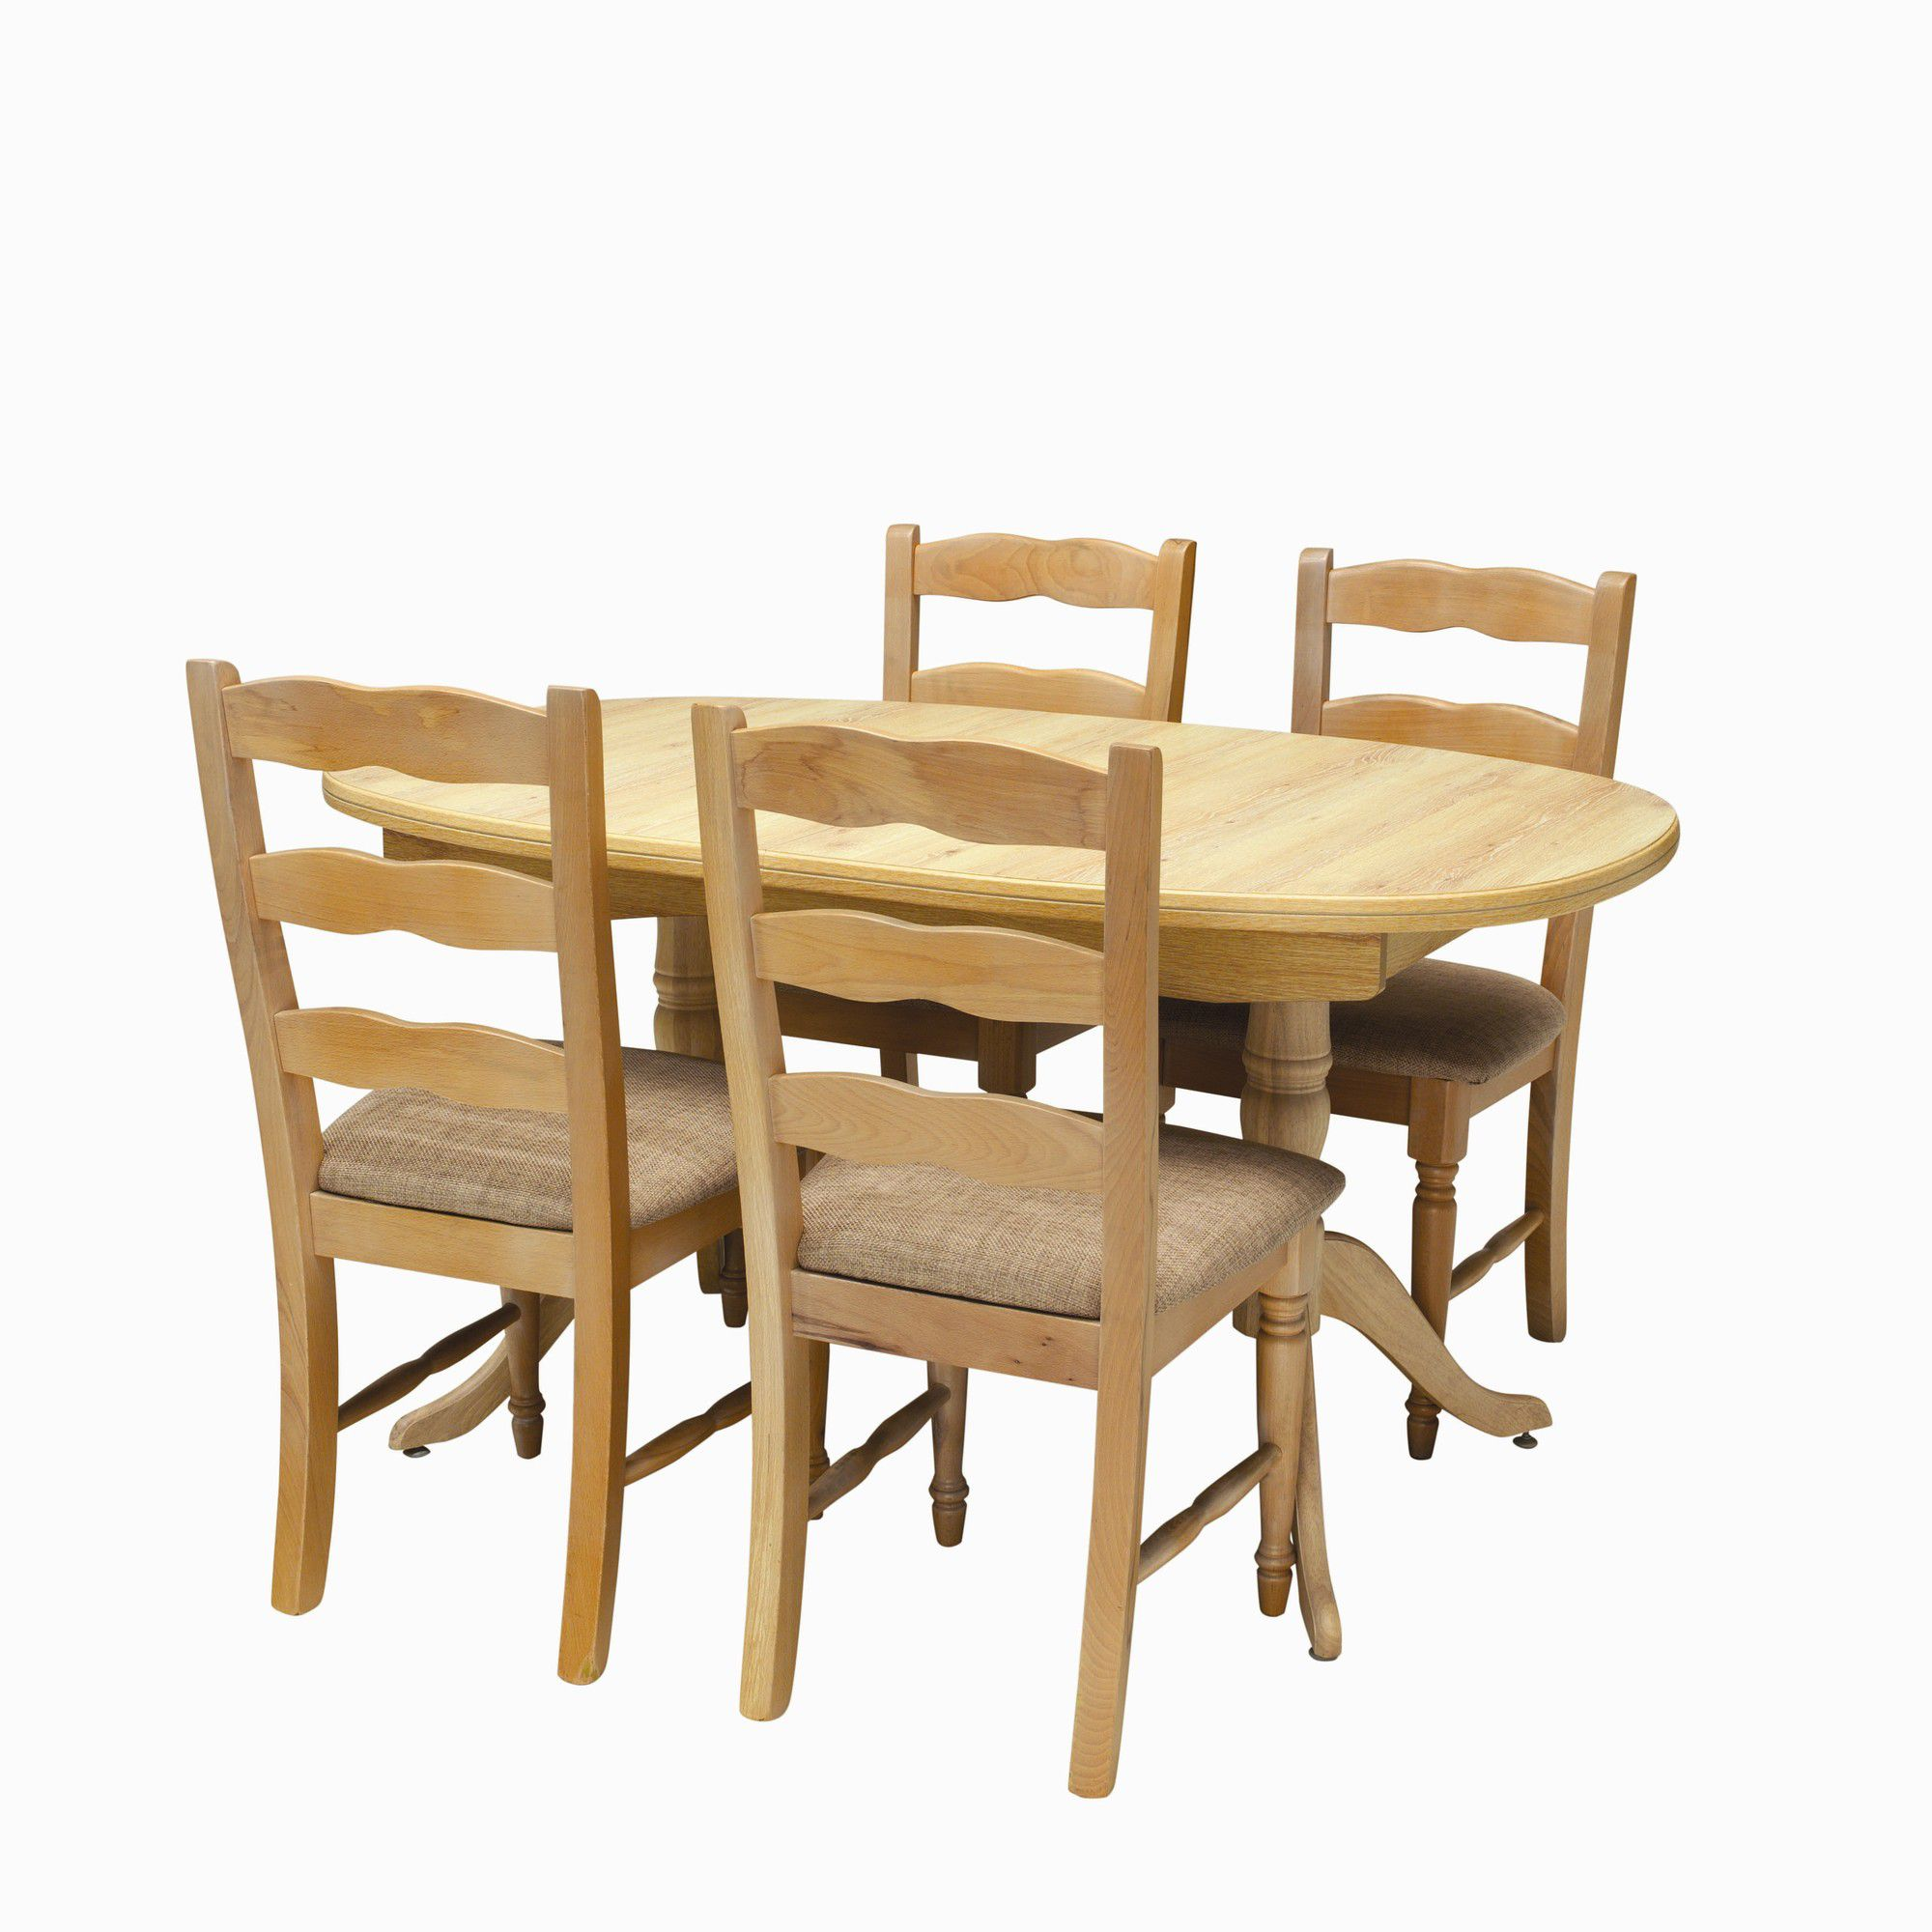 Caxton Driftwood Extending Dining Set with 4 Ladder Back Chairs in Limed Oak at Tesco Direct